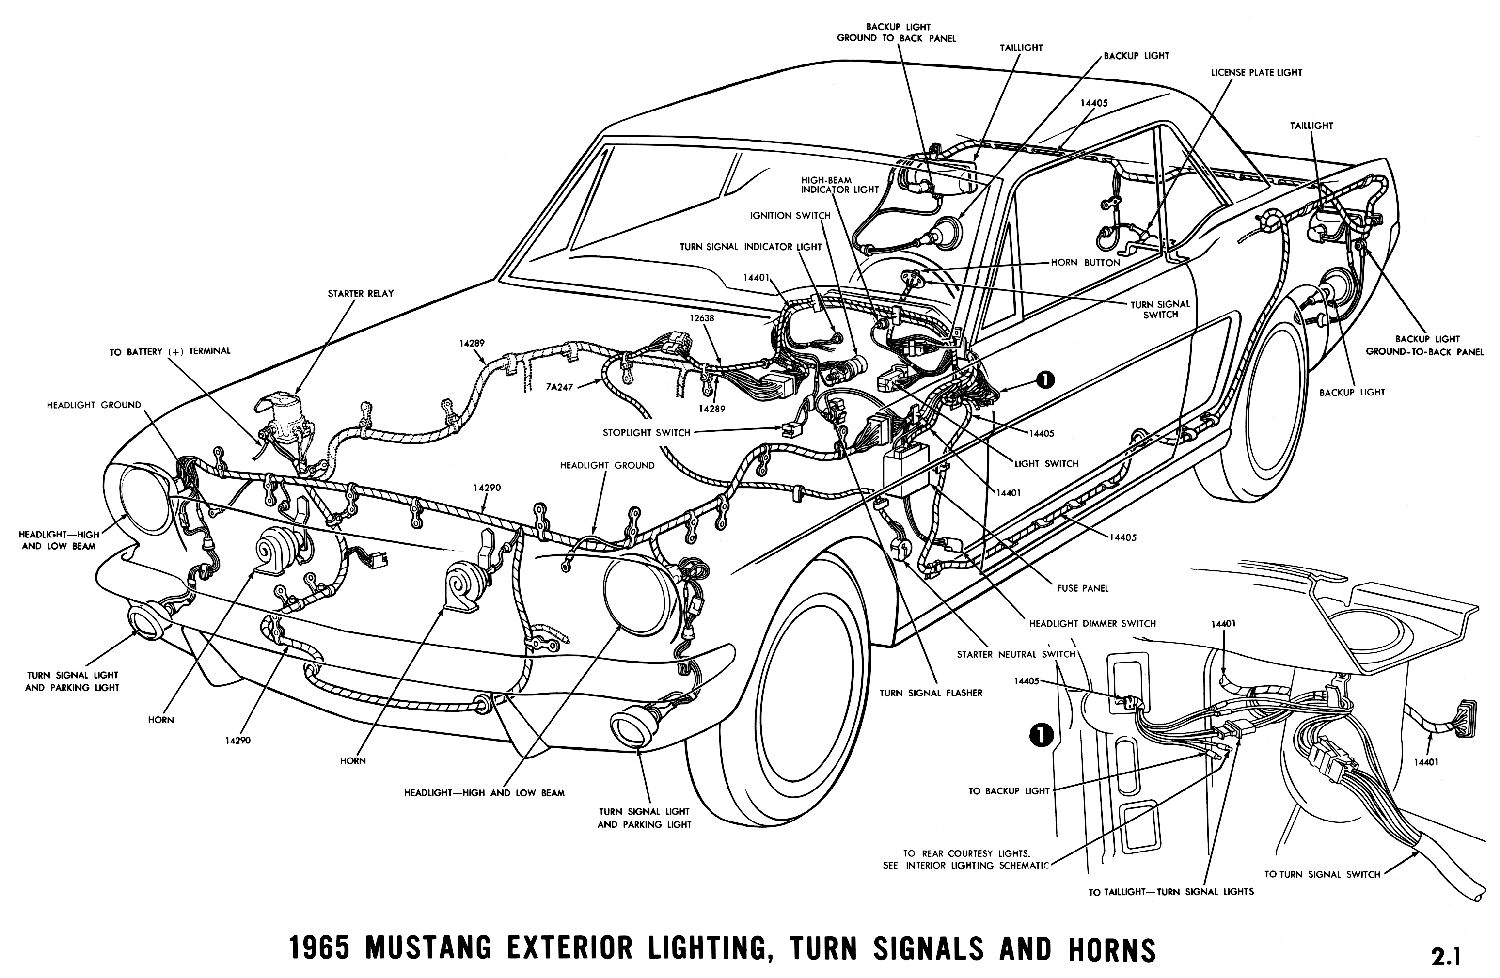 1965d 1965 mustang wiring diagrams average joe restoration 1968 mustang tail light wiring diagram at bakdesigns.co